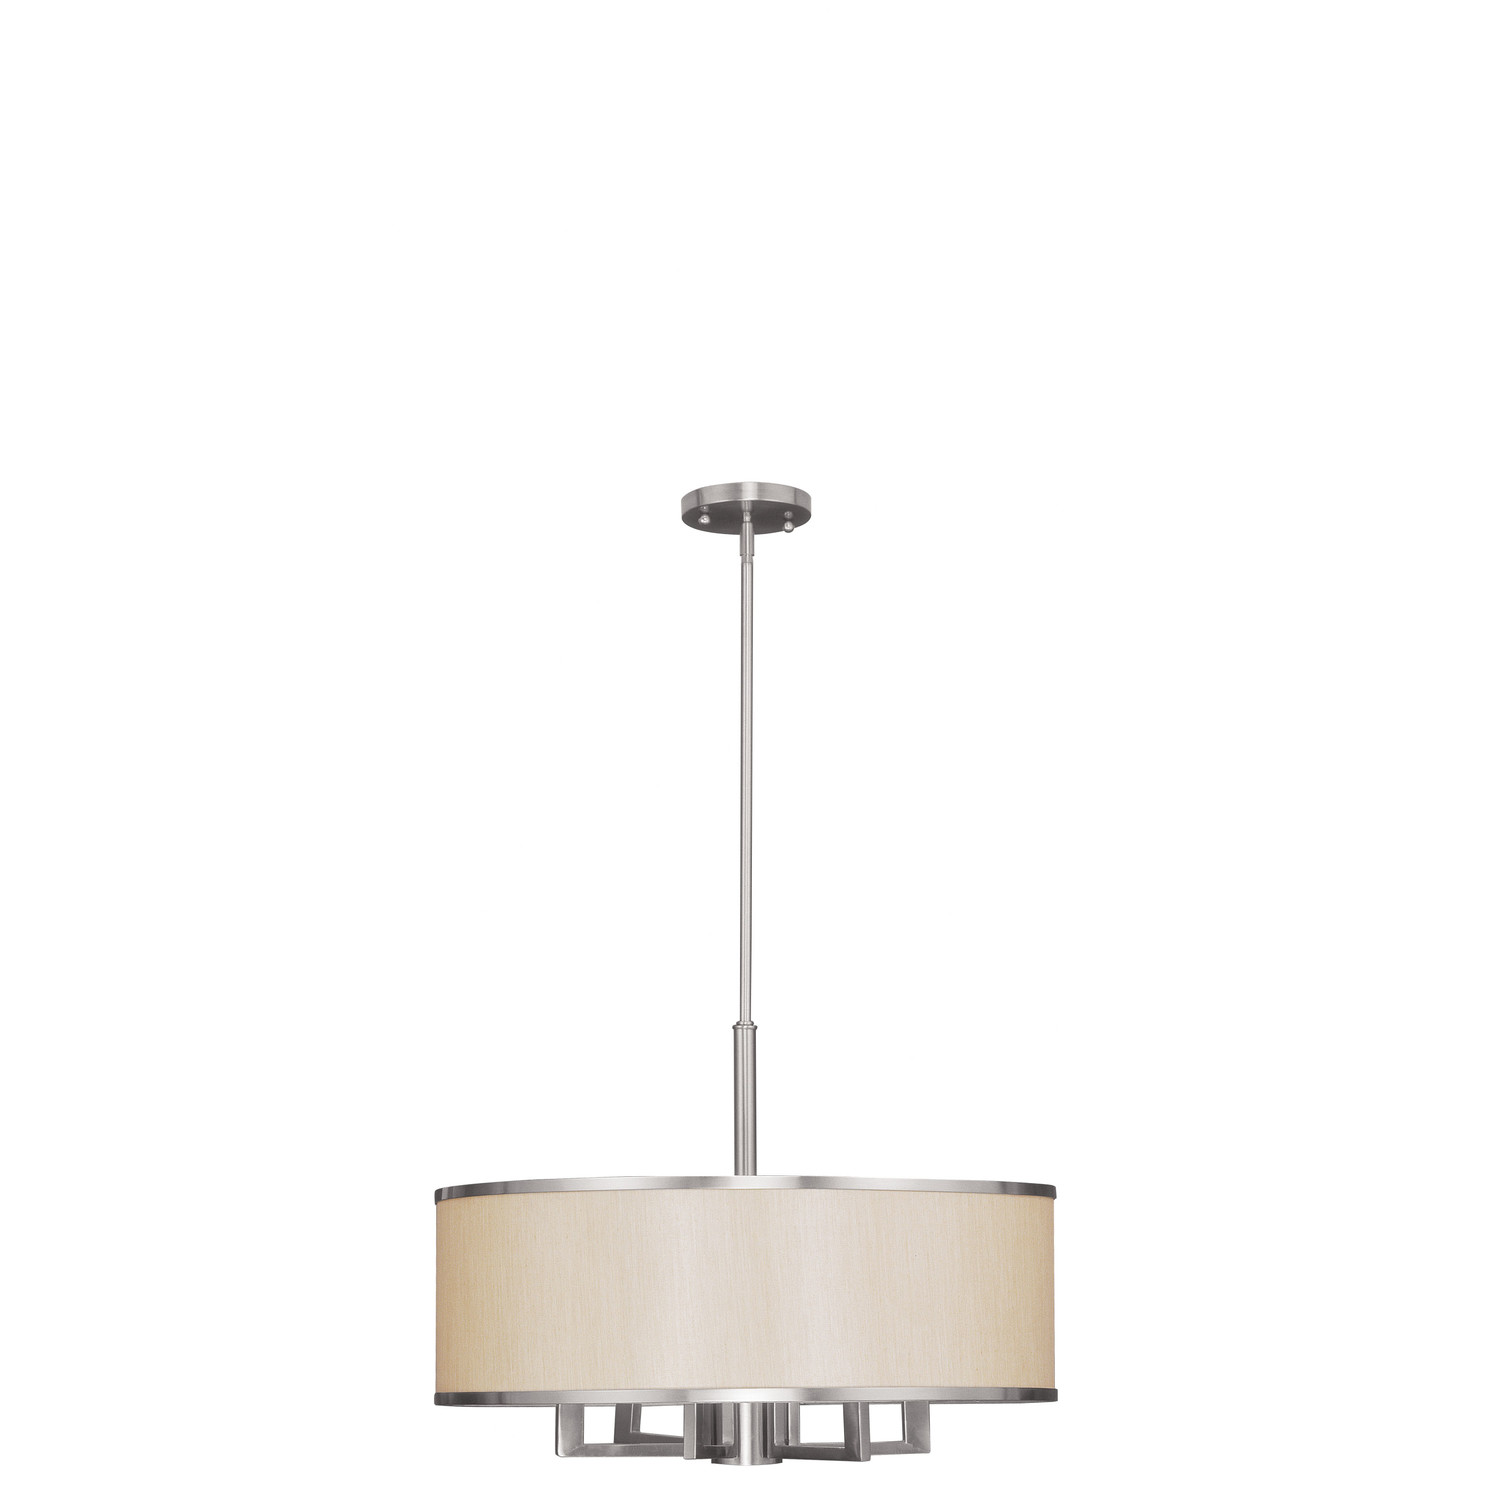 Cozy Livex Lighting Park Ridge Six Light Pendant In Brushed Nickel For Home Lighting Ideas